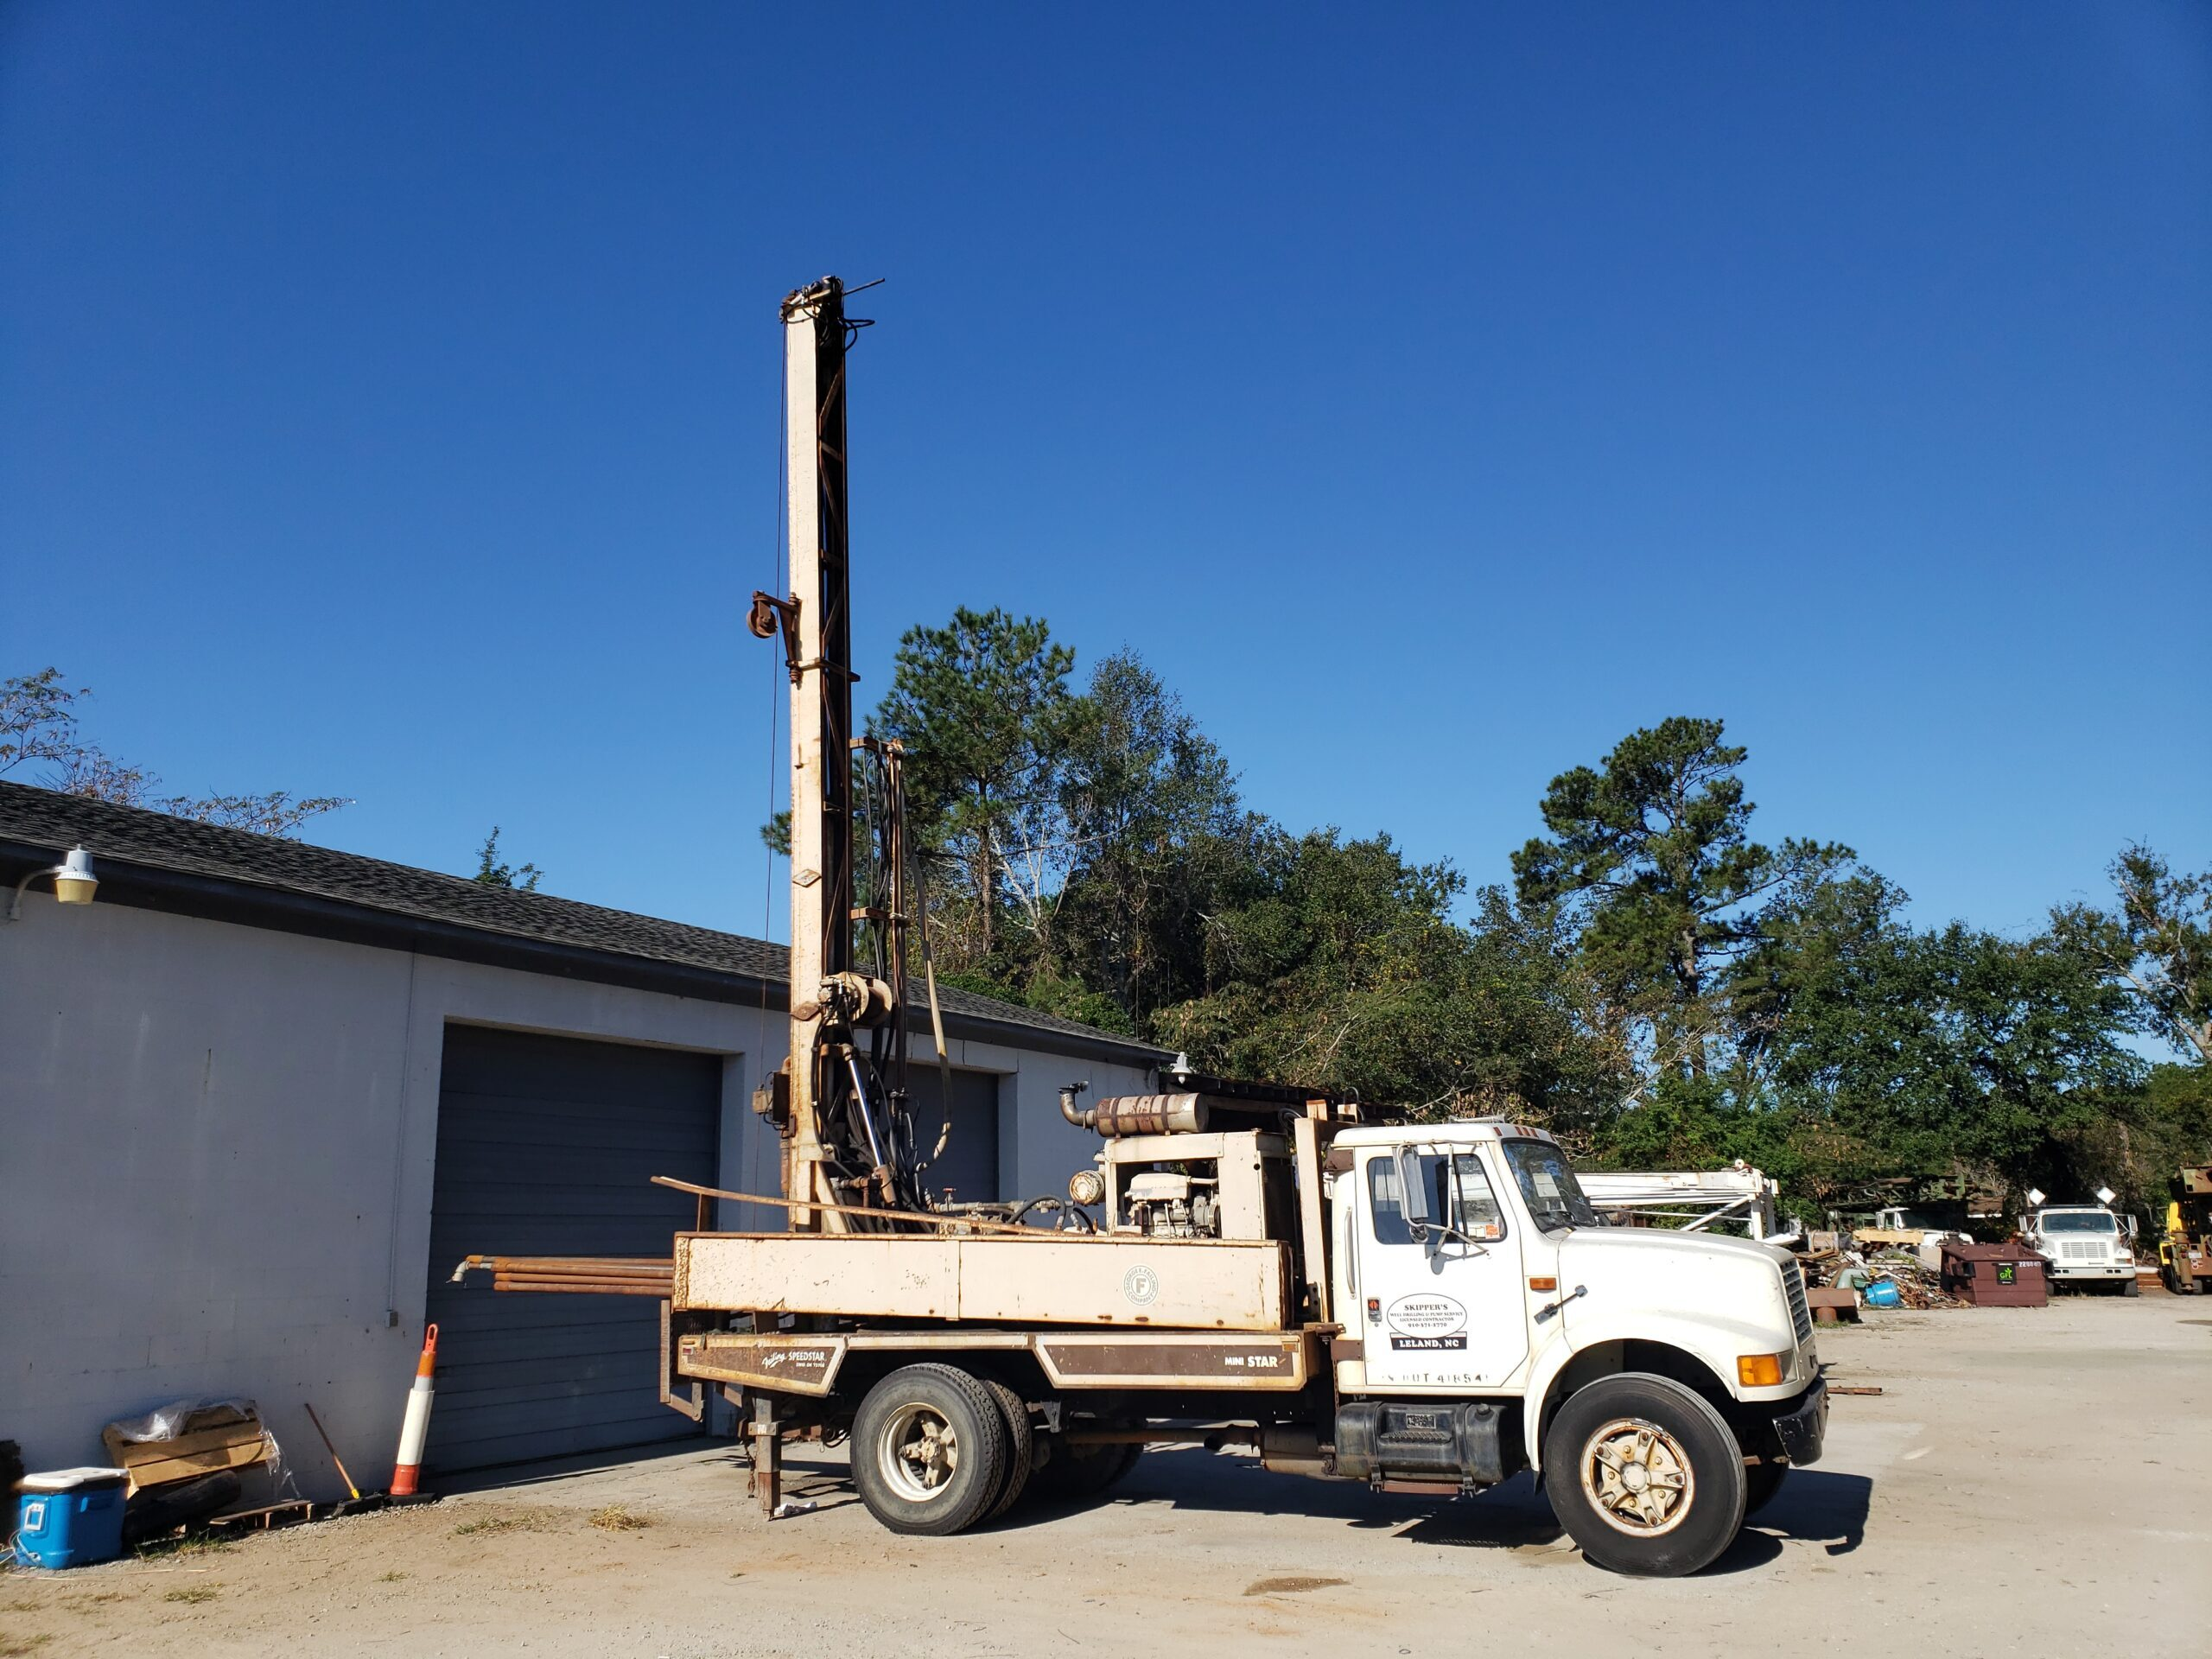 Skipper's Well Drilling & Pump Service Rig